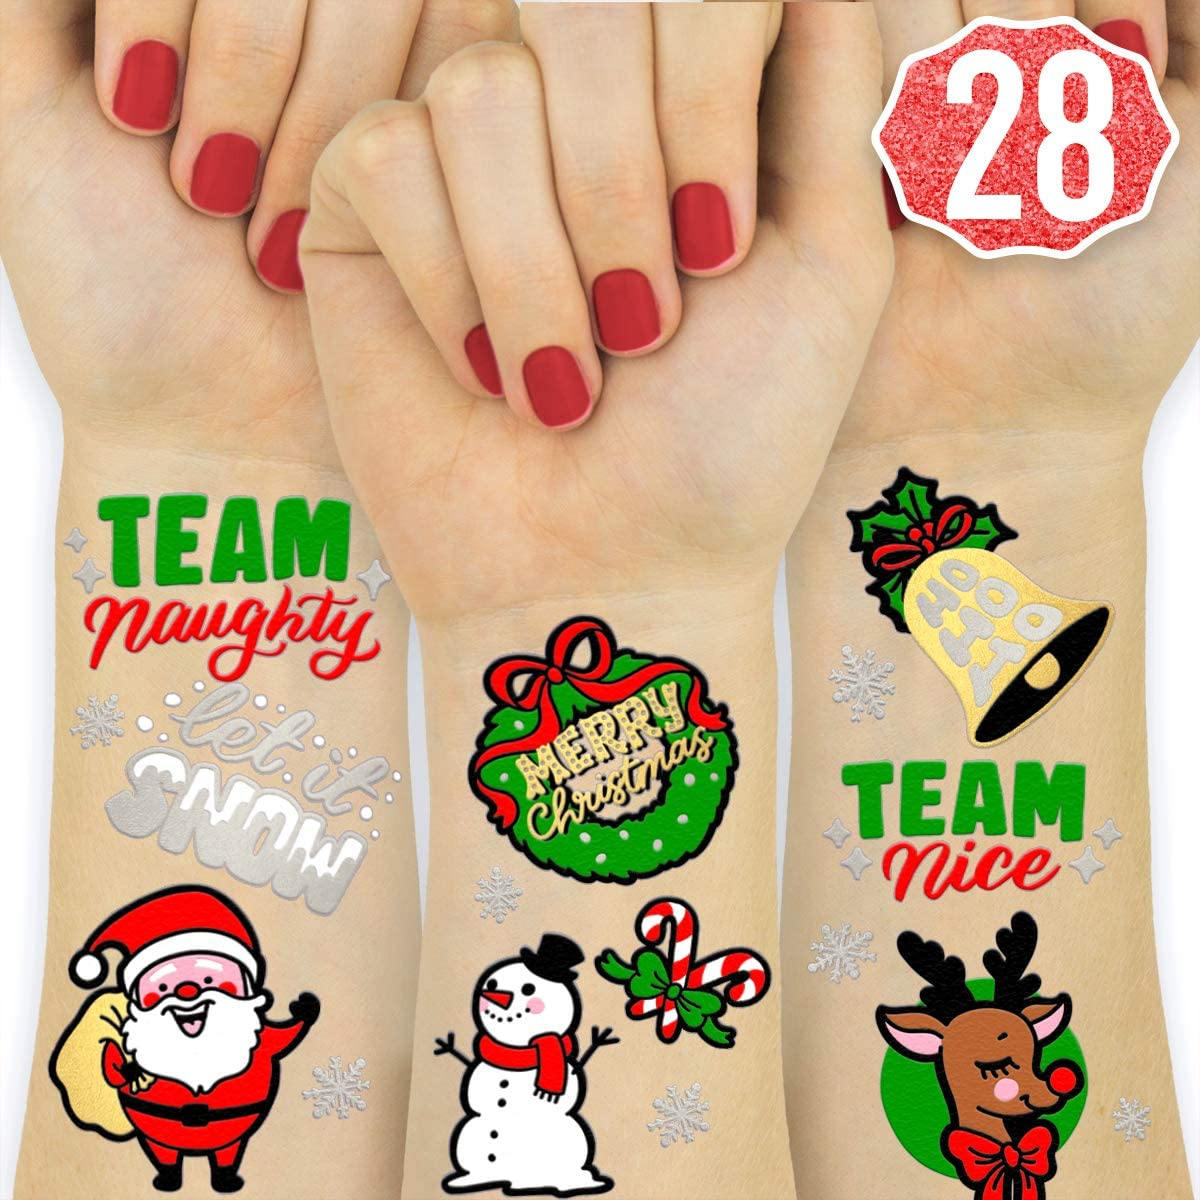 xo  Fetti Christmas Party Decorations Tattoos - 28 Glitter Styles   Merry Christmas Party Favors  Christmas Eve  Xmas Tree   Lights  Santa  More